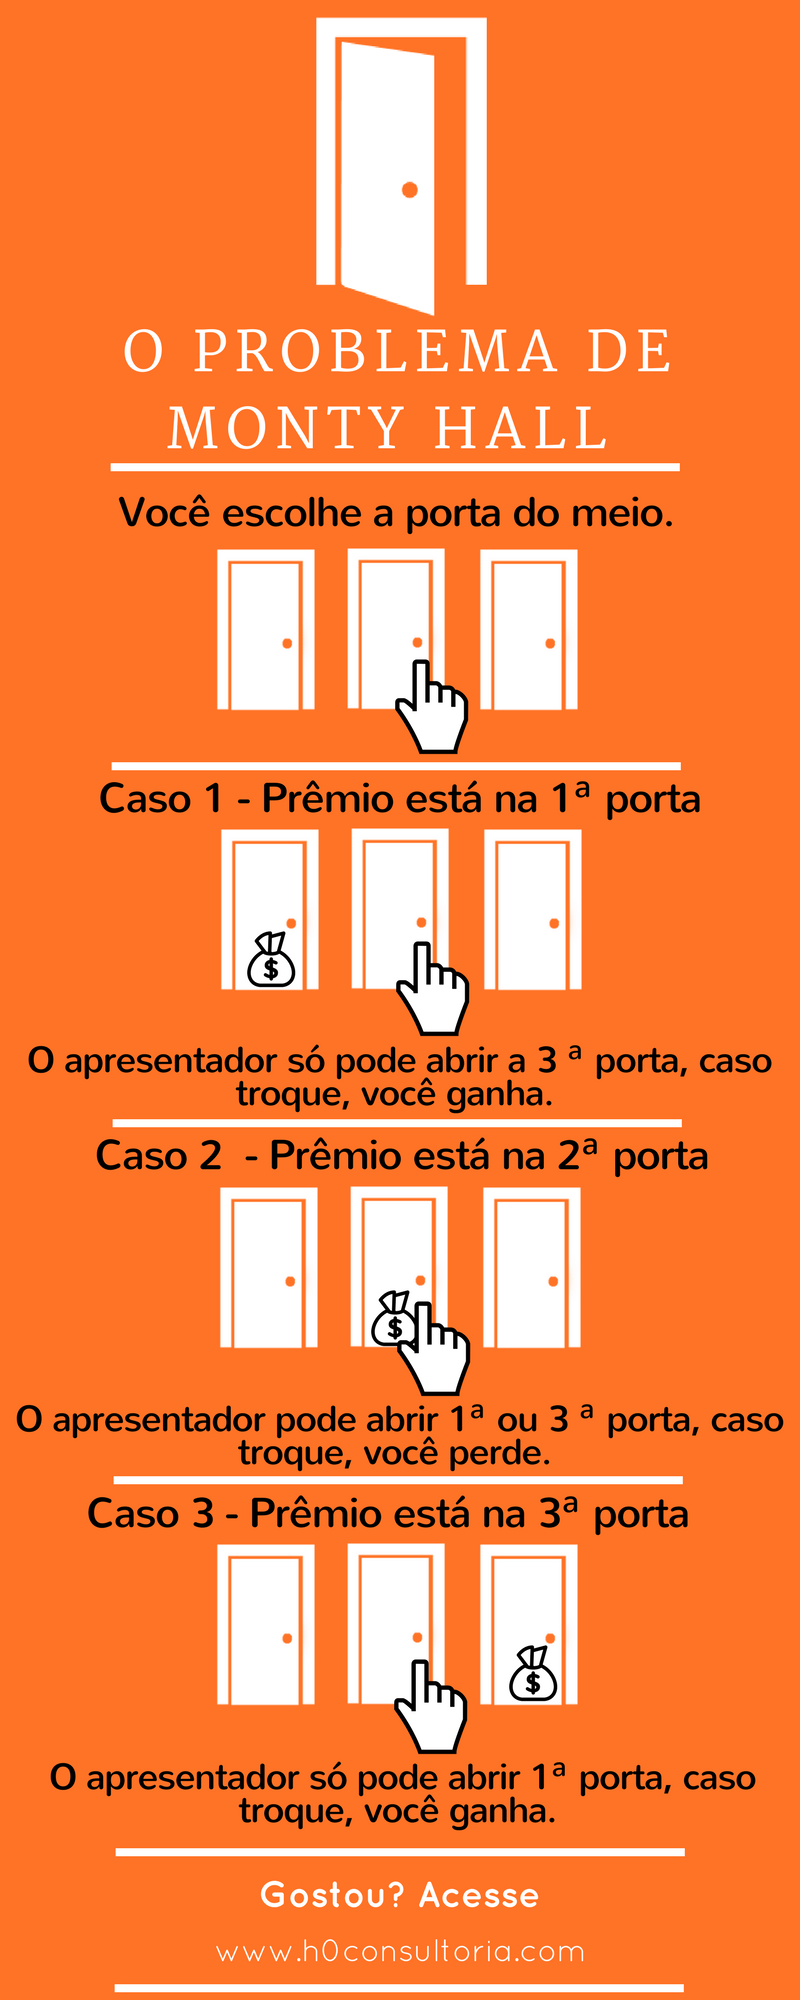 Infográfico do problema de Monty Hall